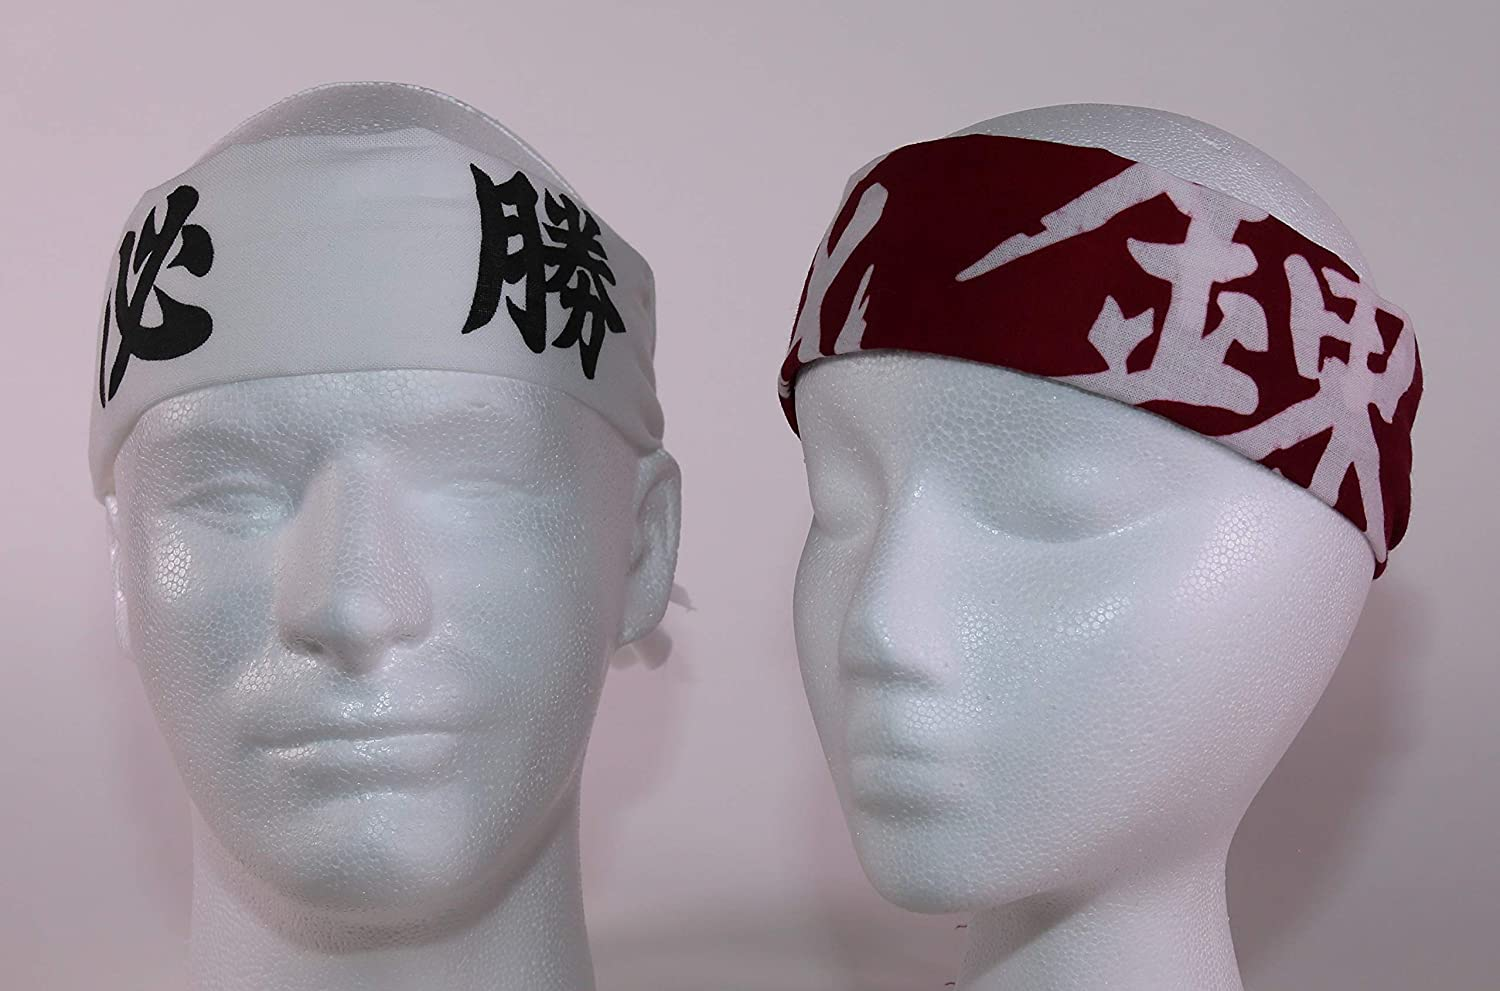 Boxing Meditation Real Japanese Inspirational Headbands for Workouts Martial Arts Exams Exercise Competitions Campaigns Karate All Challenges Six Palm Beach Judo Tests Running Tennis Bicycling Yoga